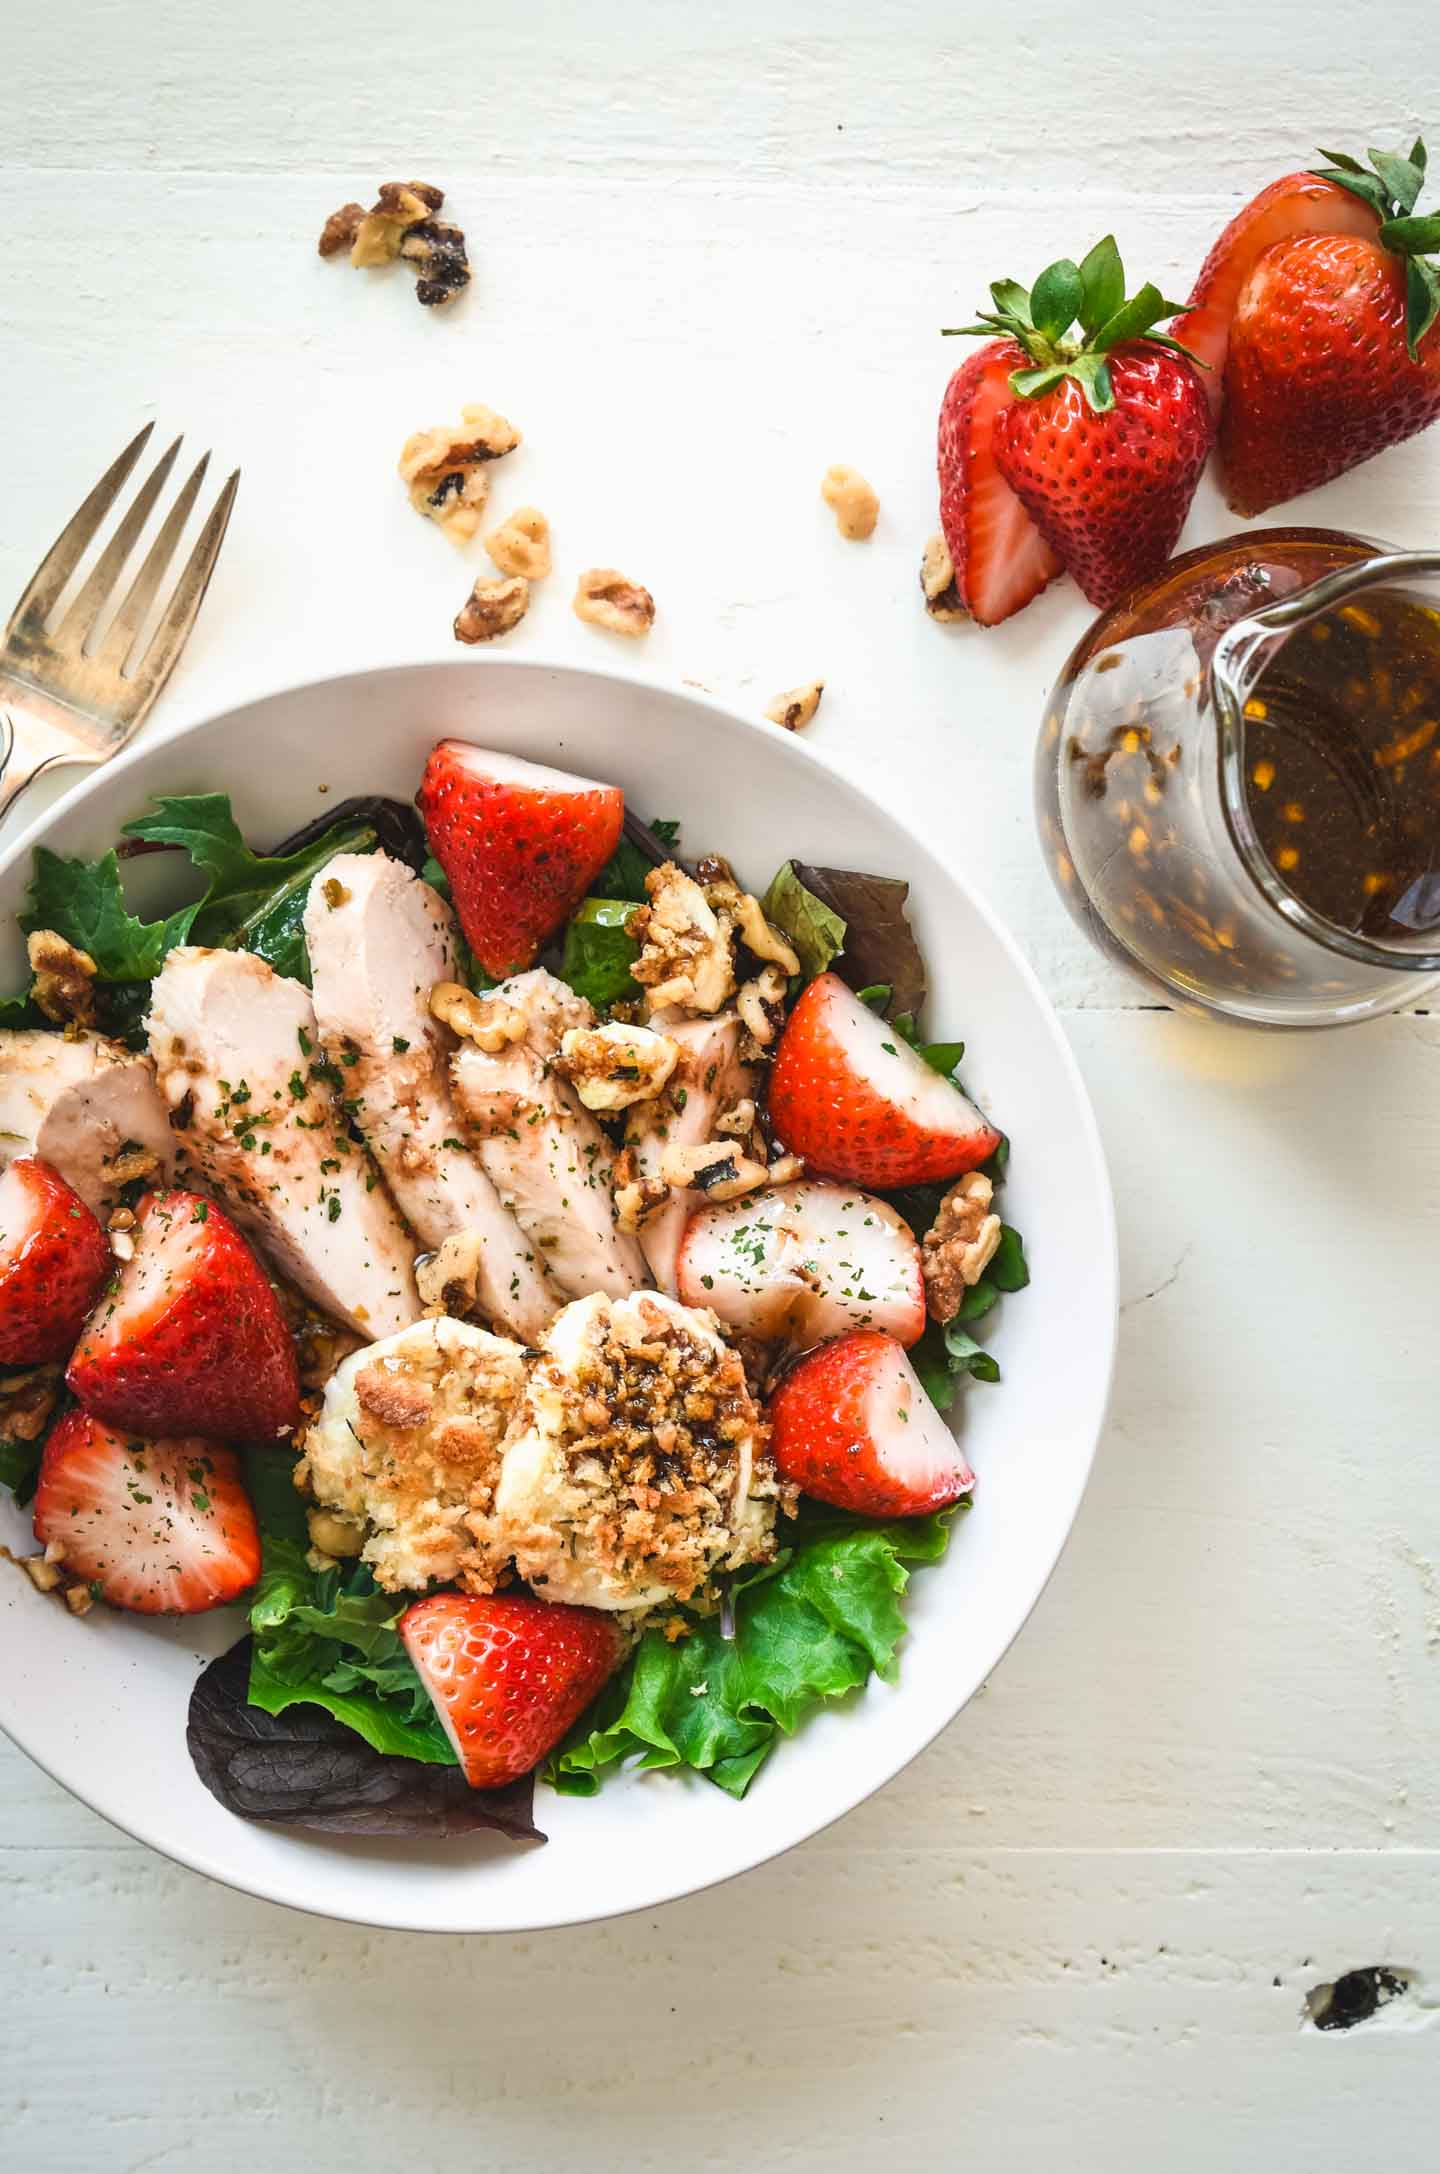 Strawberry Chicken Salad with Honey Mustard Dressing